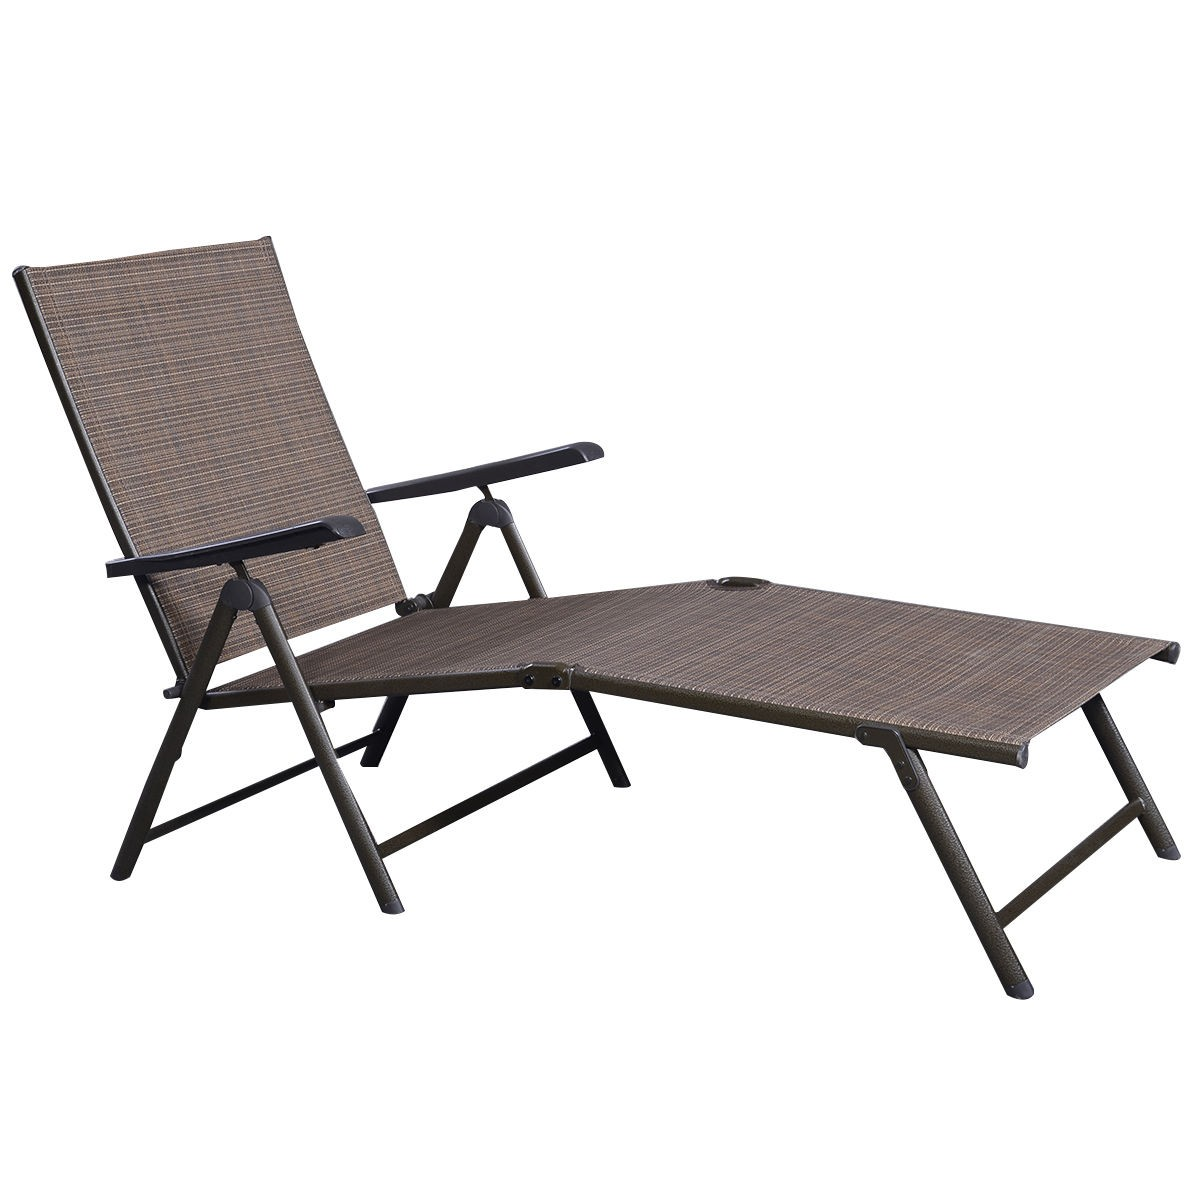 Outdoor Recliner Lounge Patio Furniture Textilene Adjustable Pool Chaise Lounge